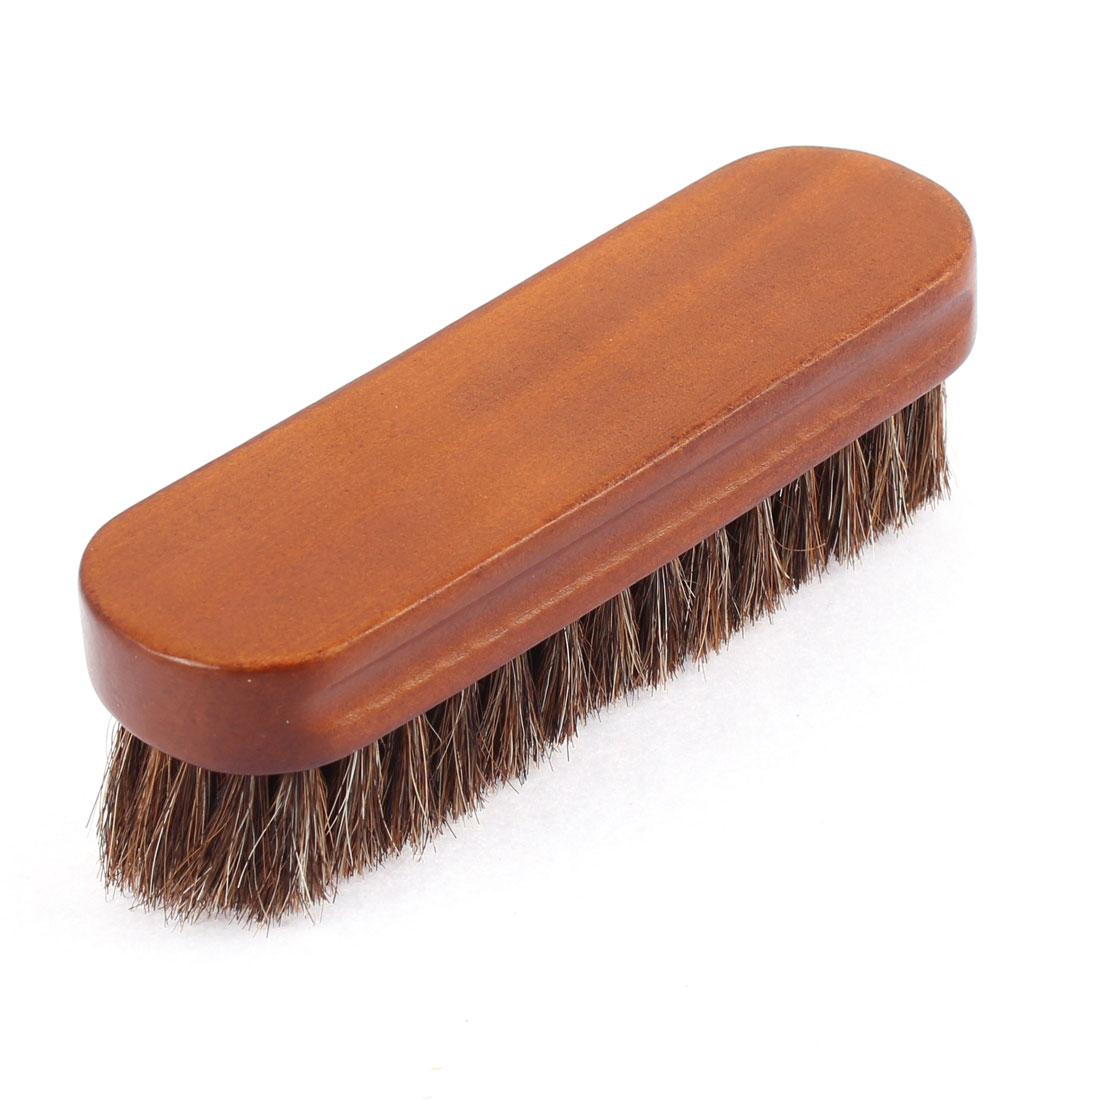 Wooden Handle 6 Rows Thick Horse Hair Brush Bristle Cleaning Tool Beige Brown